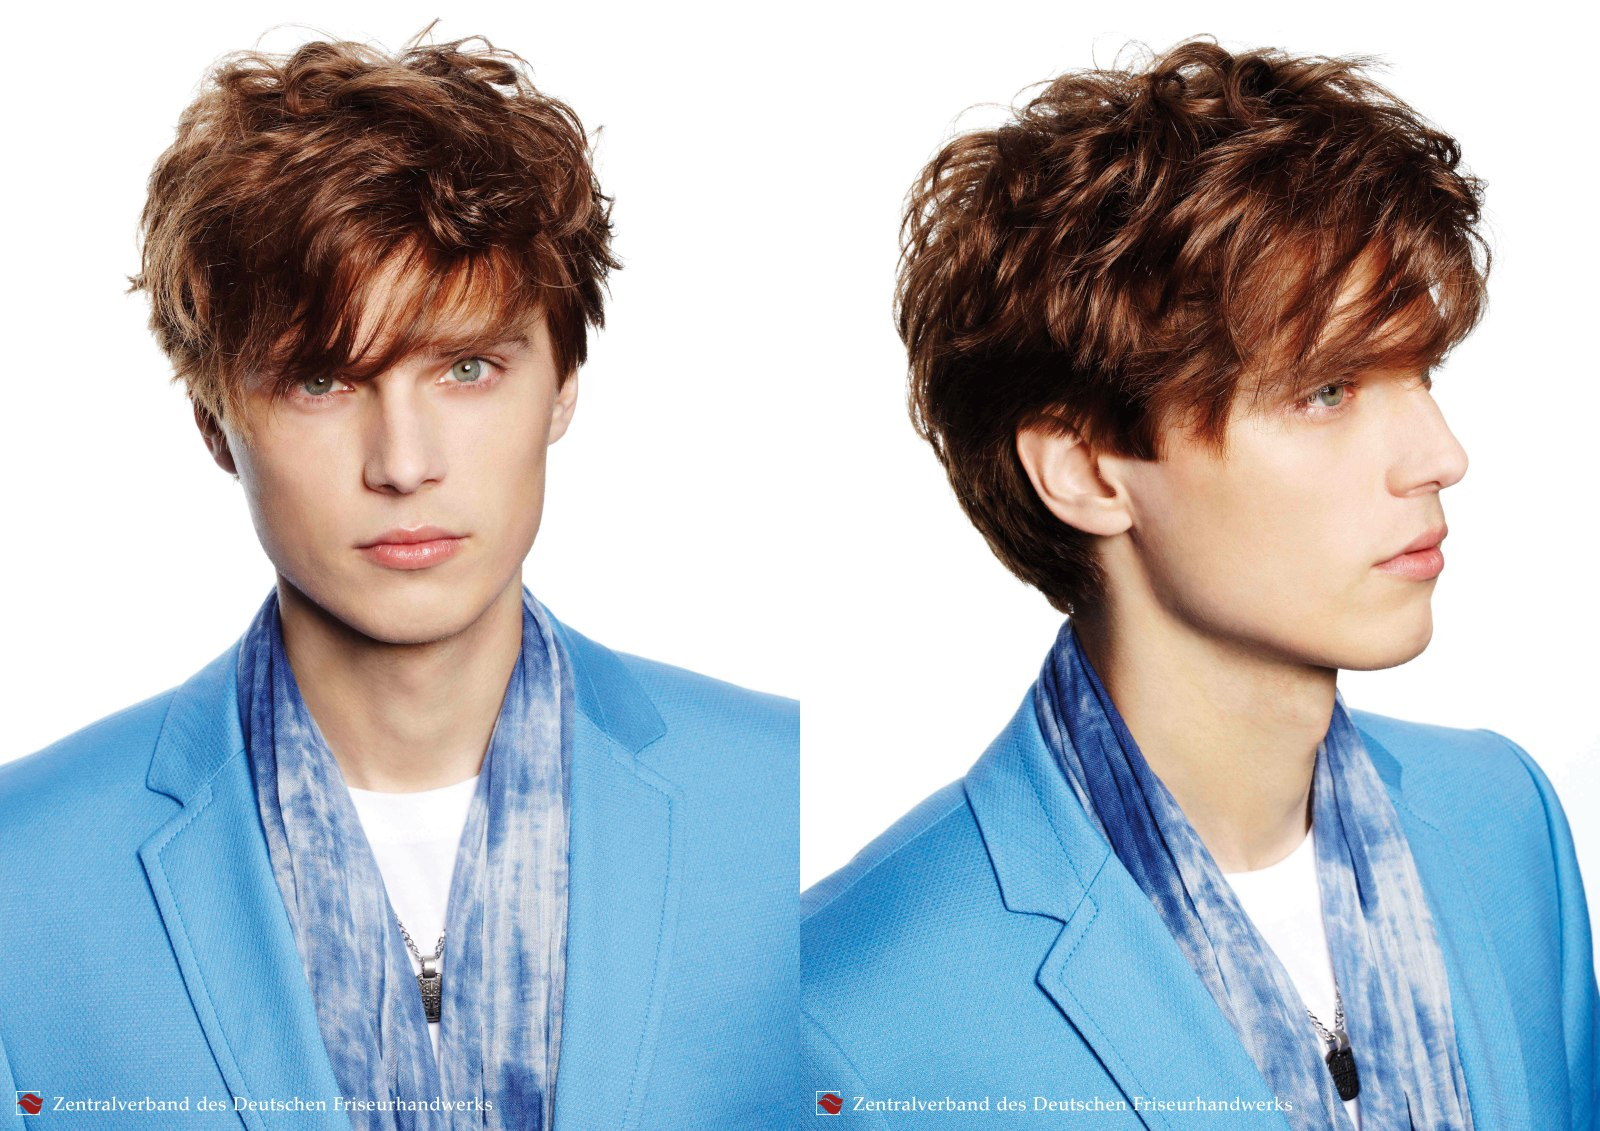 Handsome hairstyle for young men, with the hair styled towards the ...